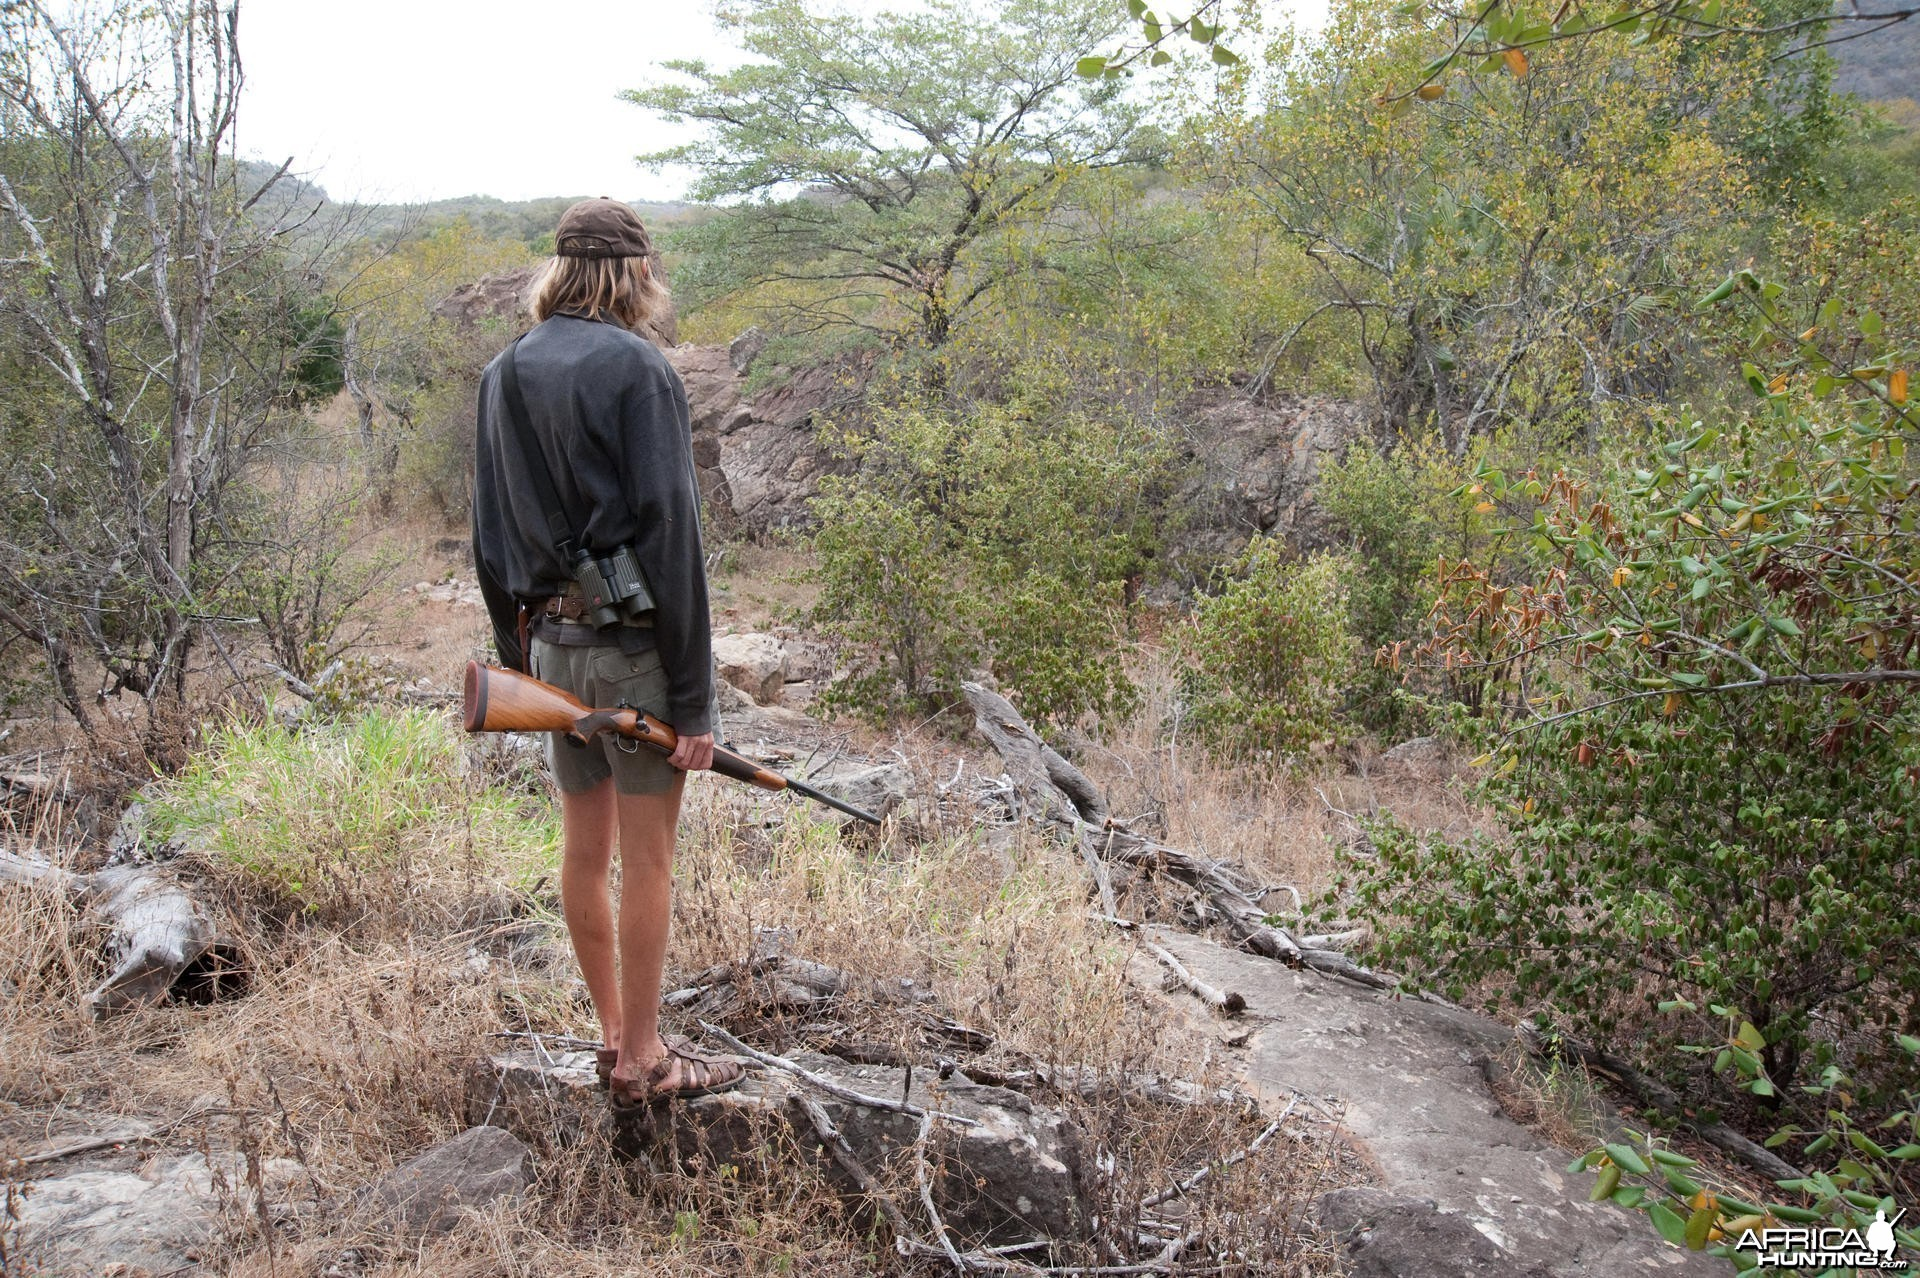 Hunting in Zimbabwe